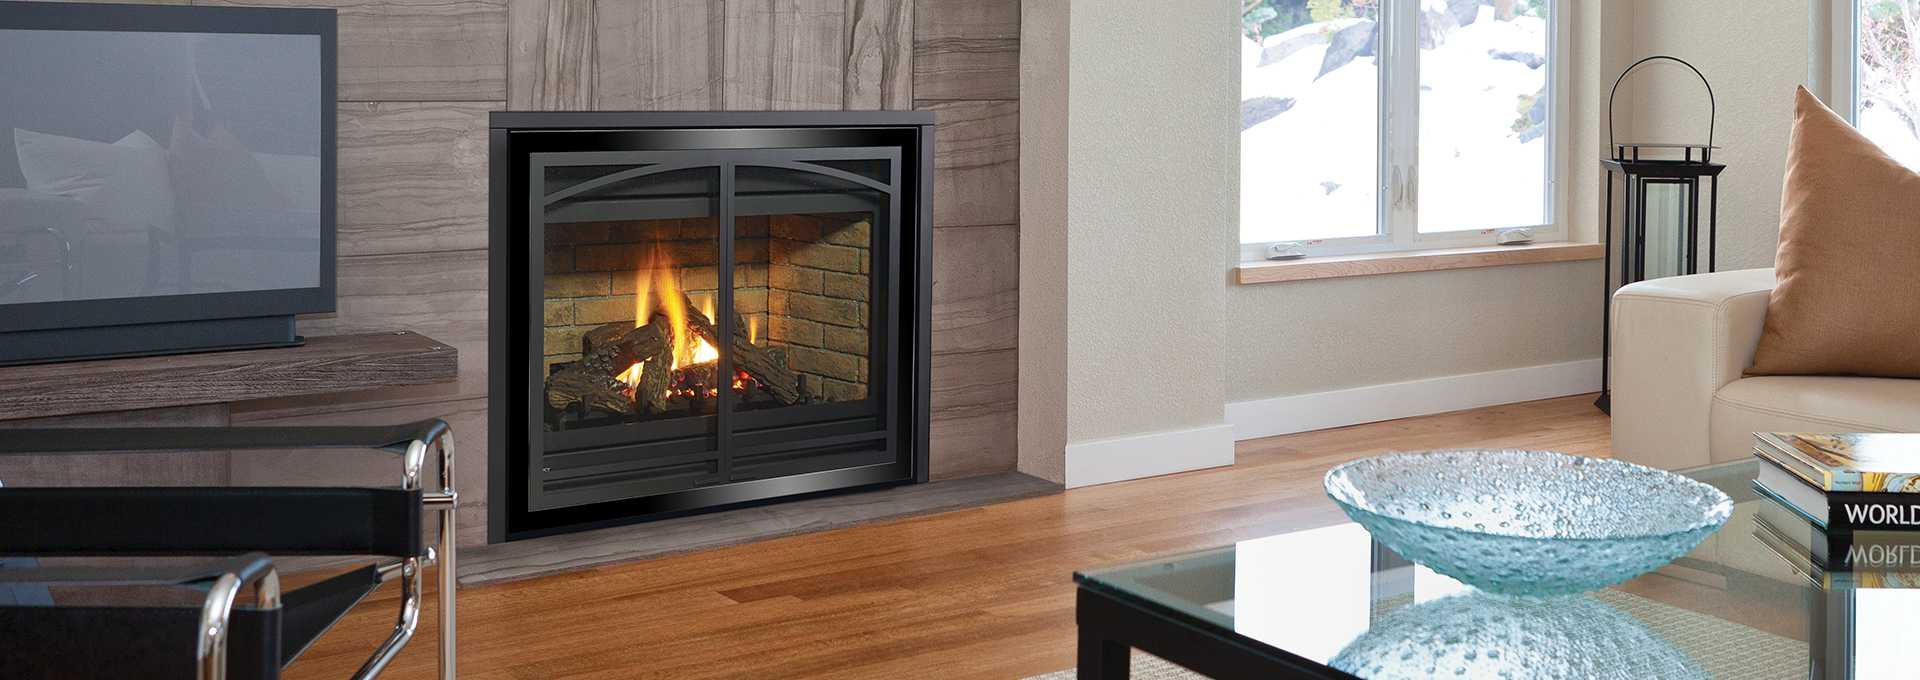 panorama p36d gas fireplace gas fireplaces regency fireplace